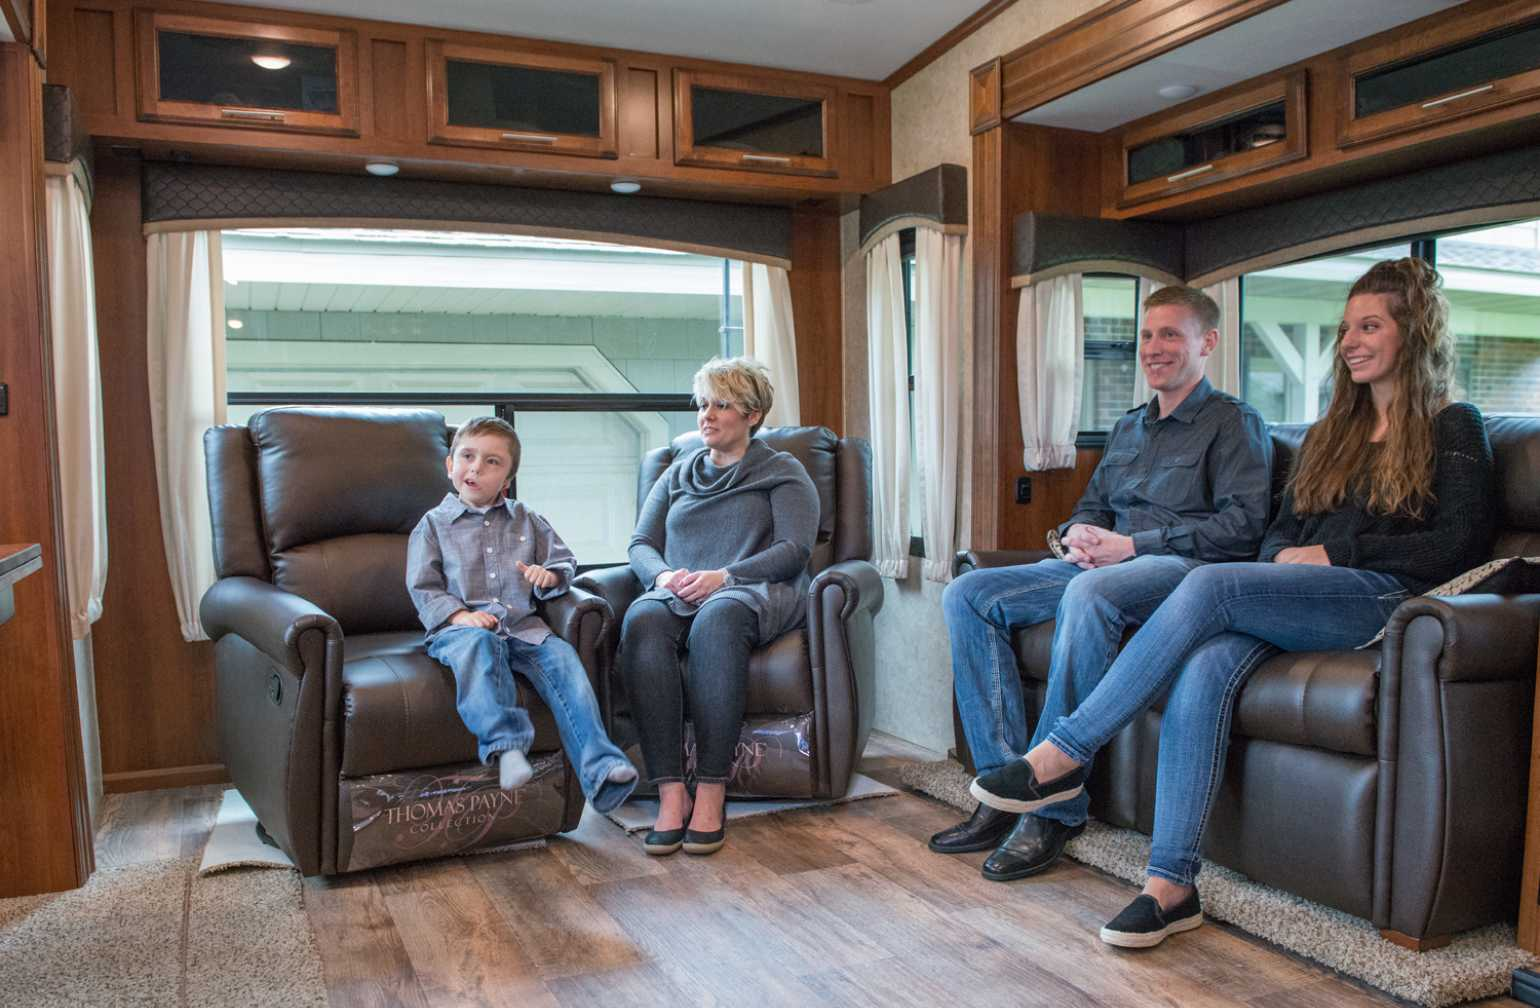 Bentley and family sitting inside camper